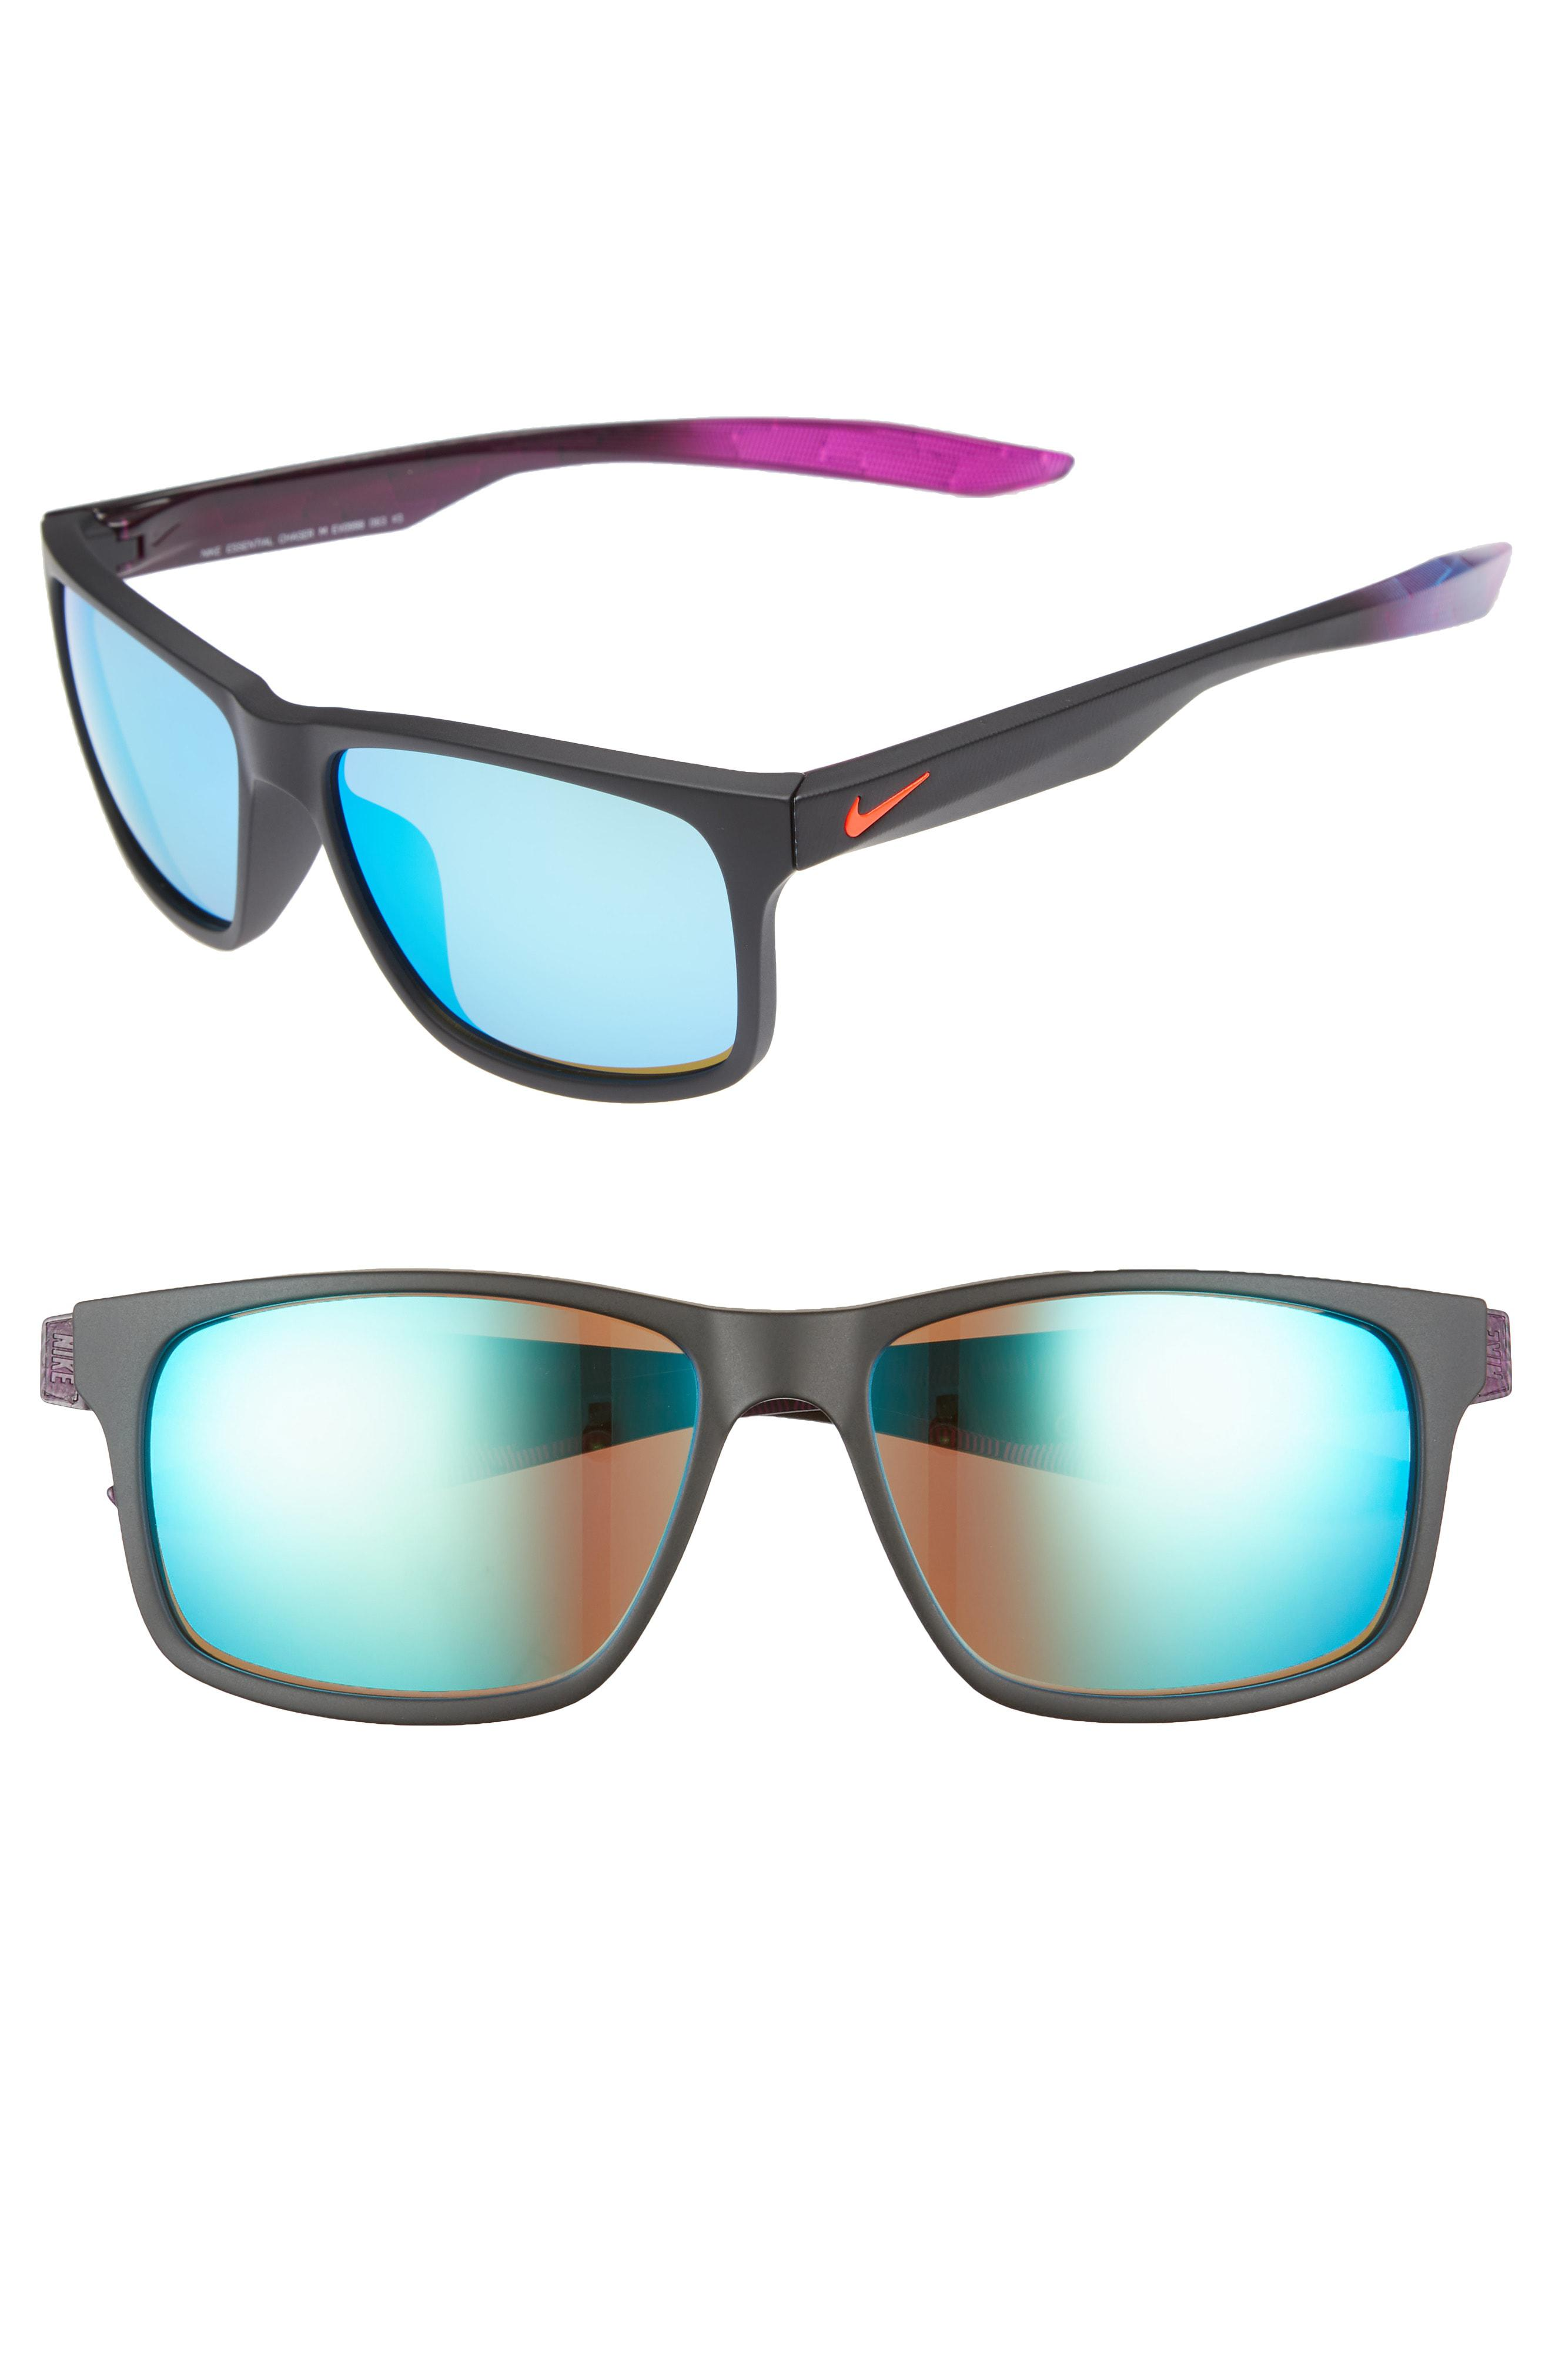 2d8a53b4578 Lyst - Nike Essential Chaser 57mm Reflective Sunglasses - in Blue ...